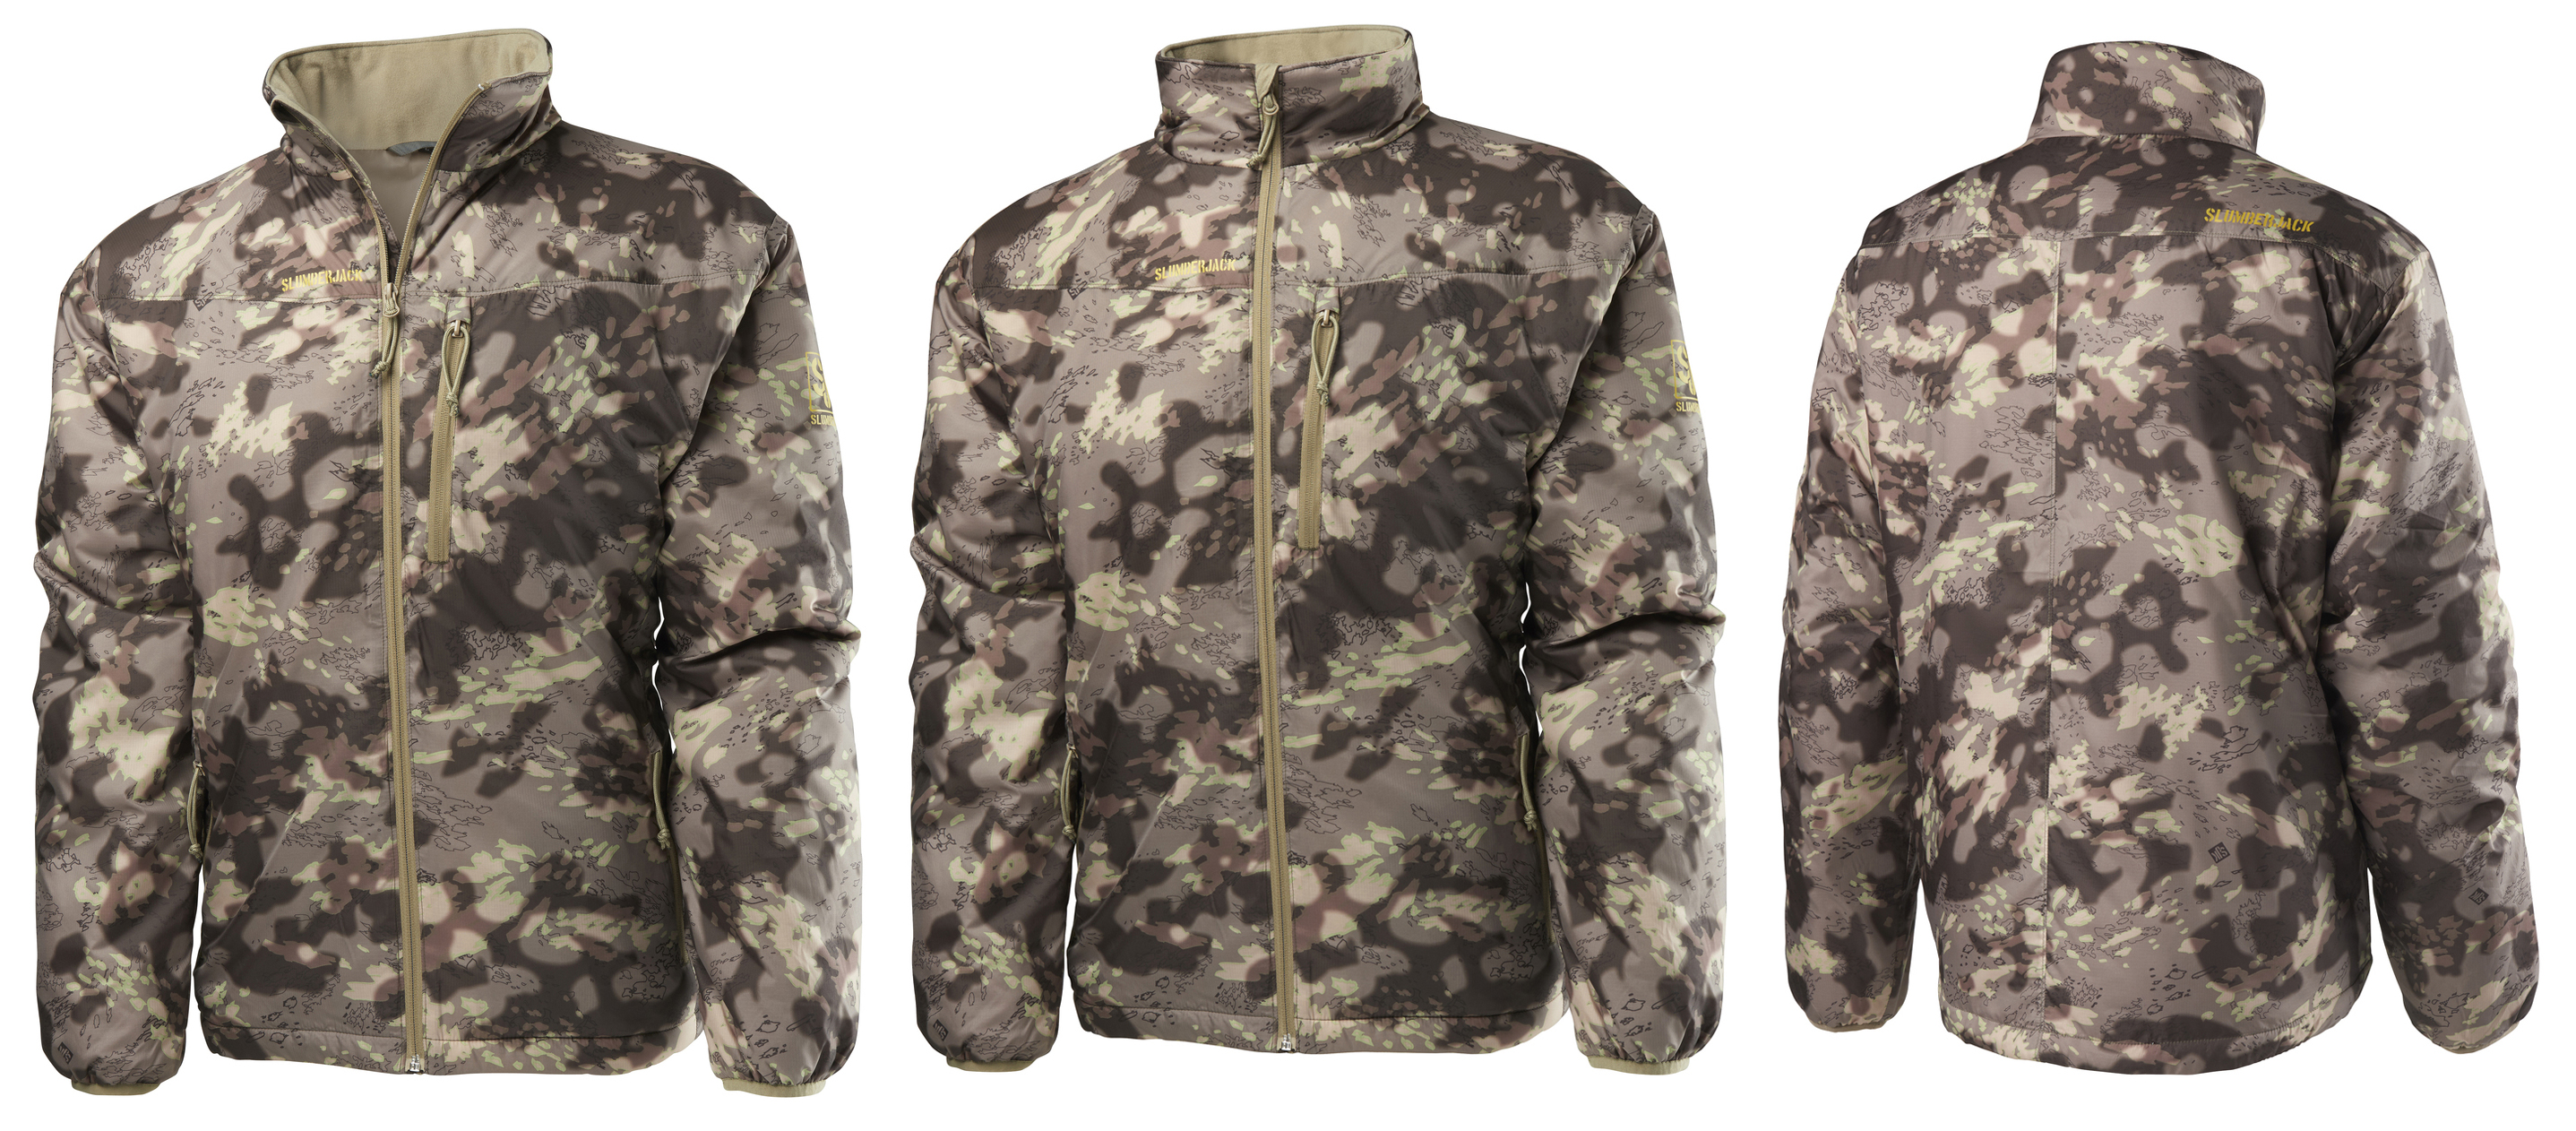 Review: Slumberjack Grit Jacket in DST Camo